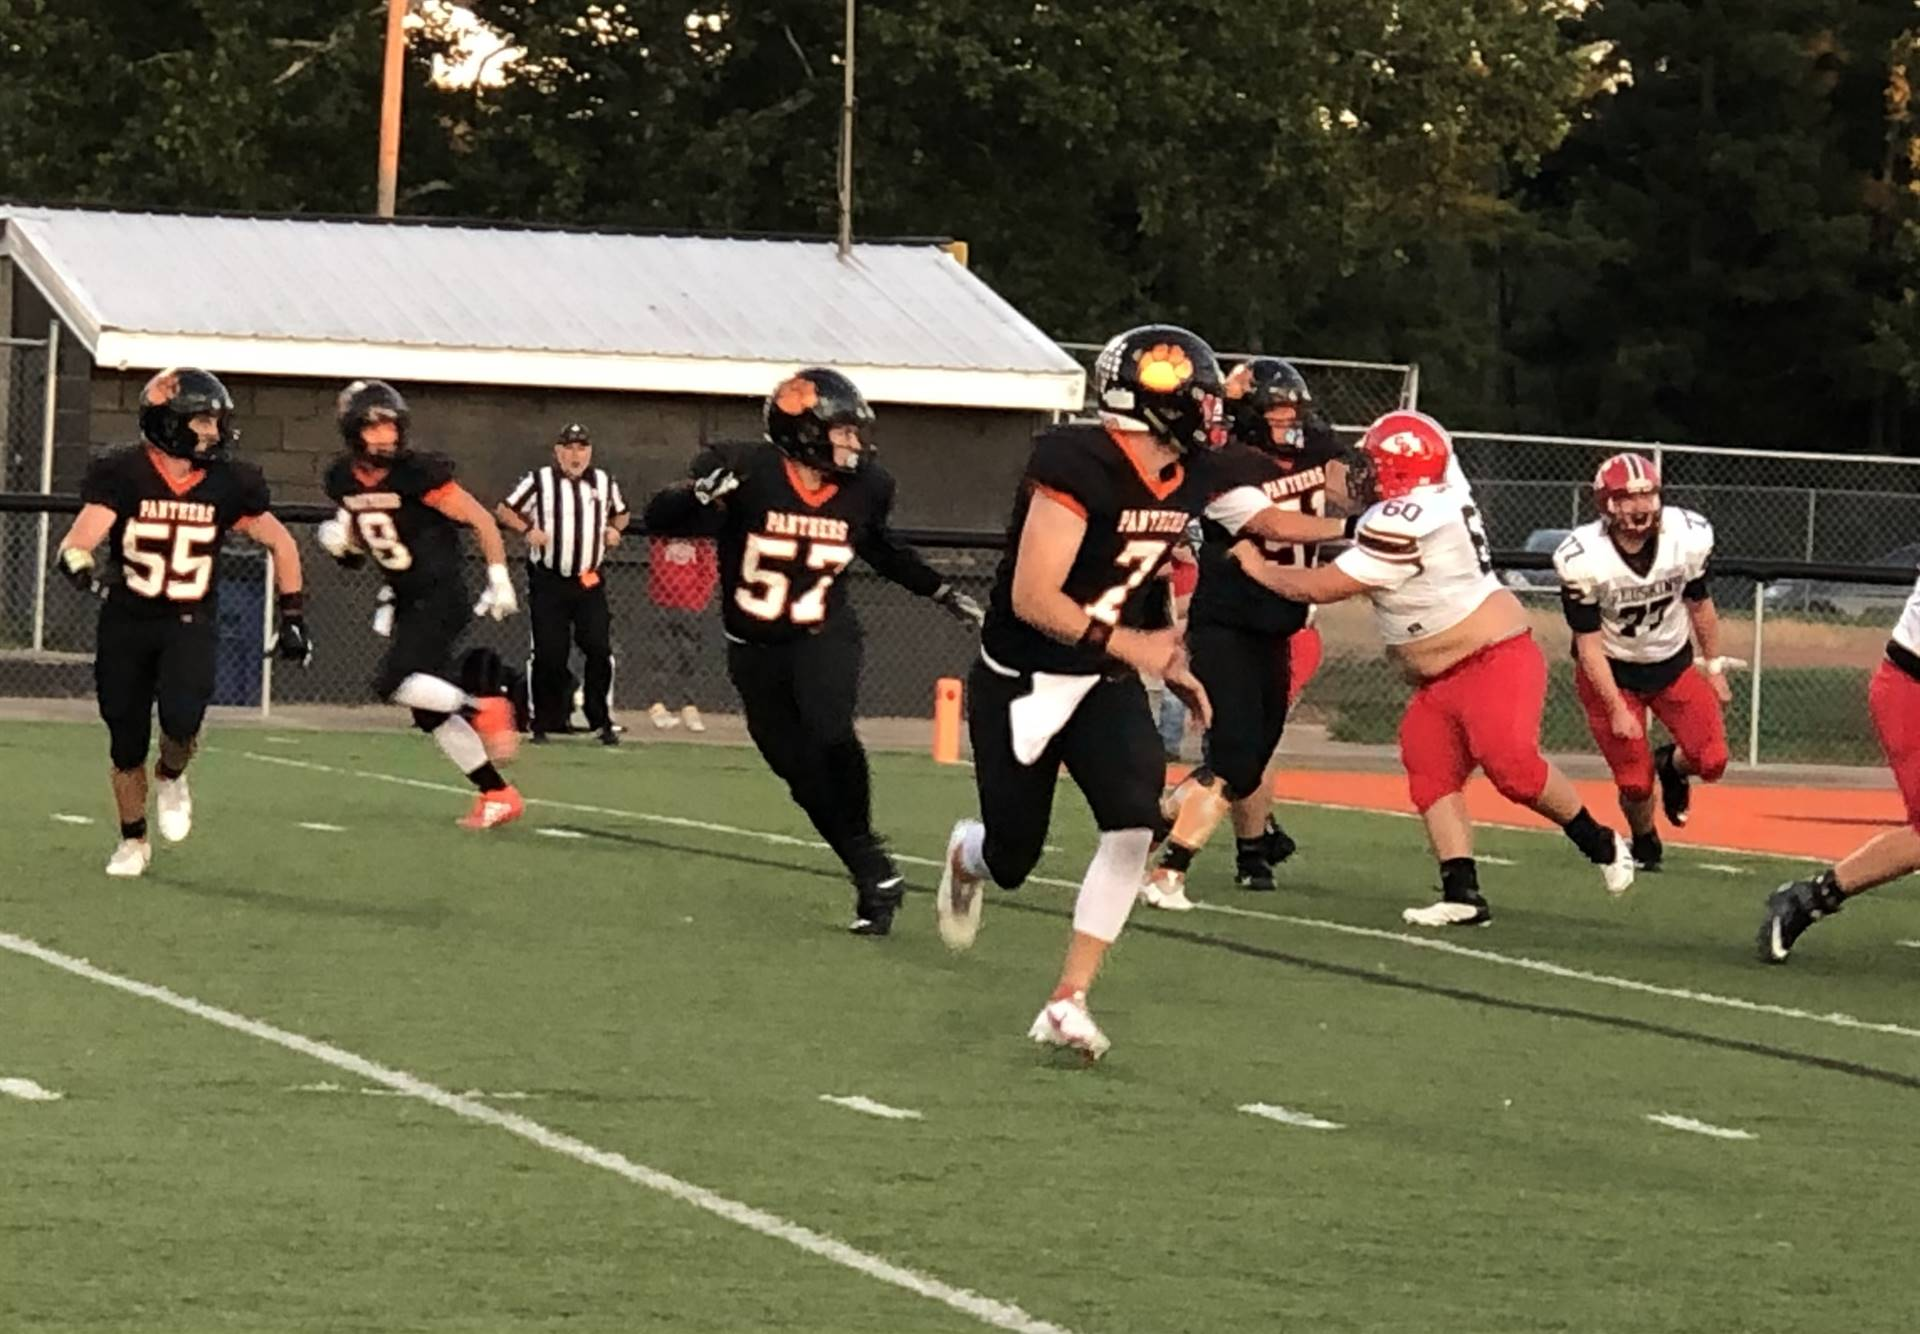 Varsity Football taking on Coshocton at Home